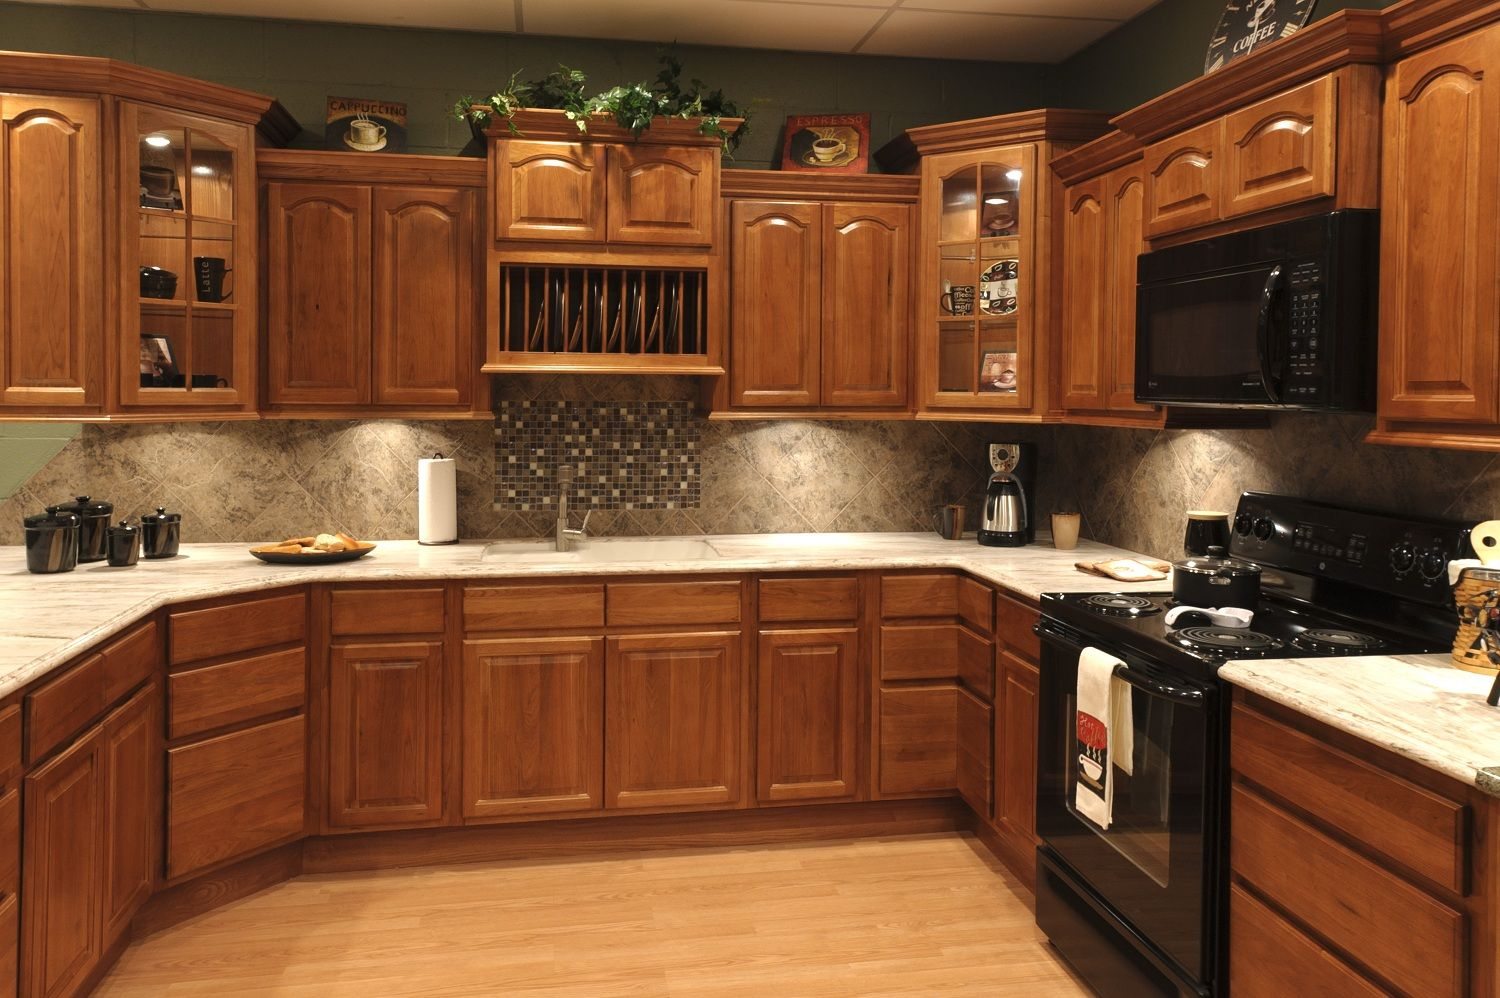 Red Oak Kitchen Cabinets Dining Tables Lovable Cabinet On House Renovation Inspiration With Helpformycredit